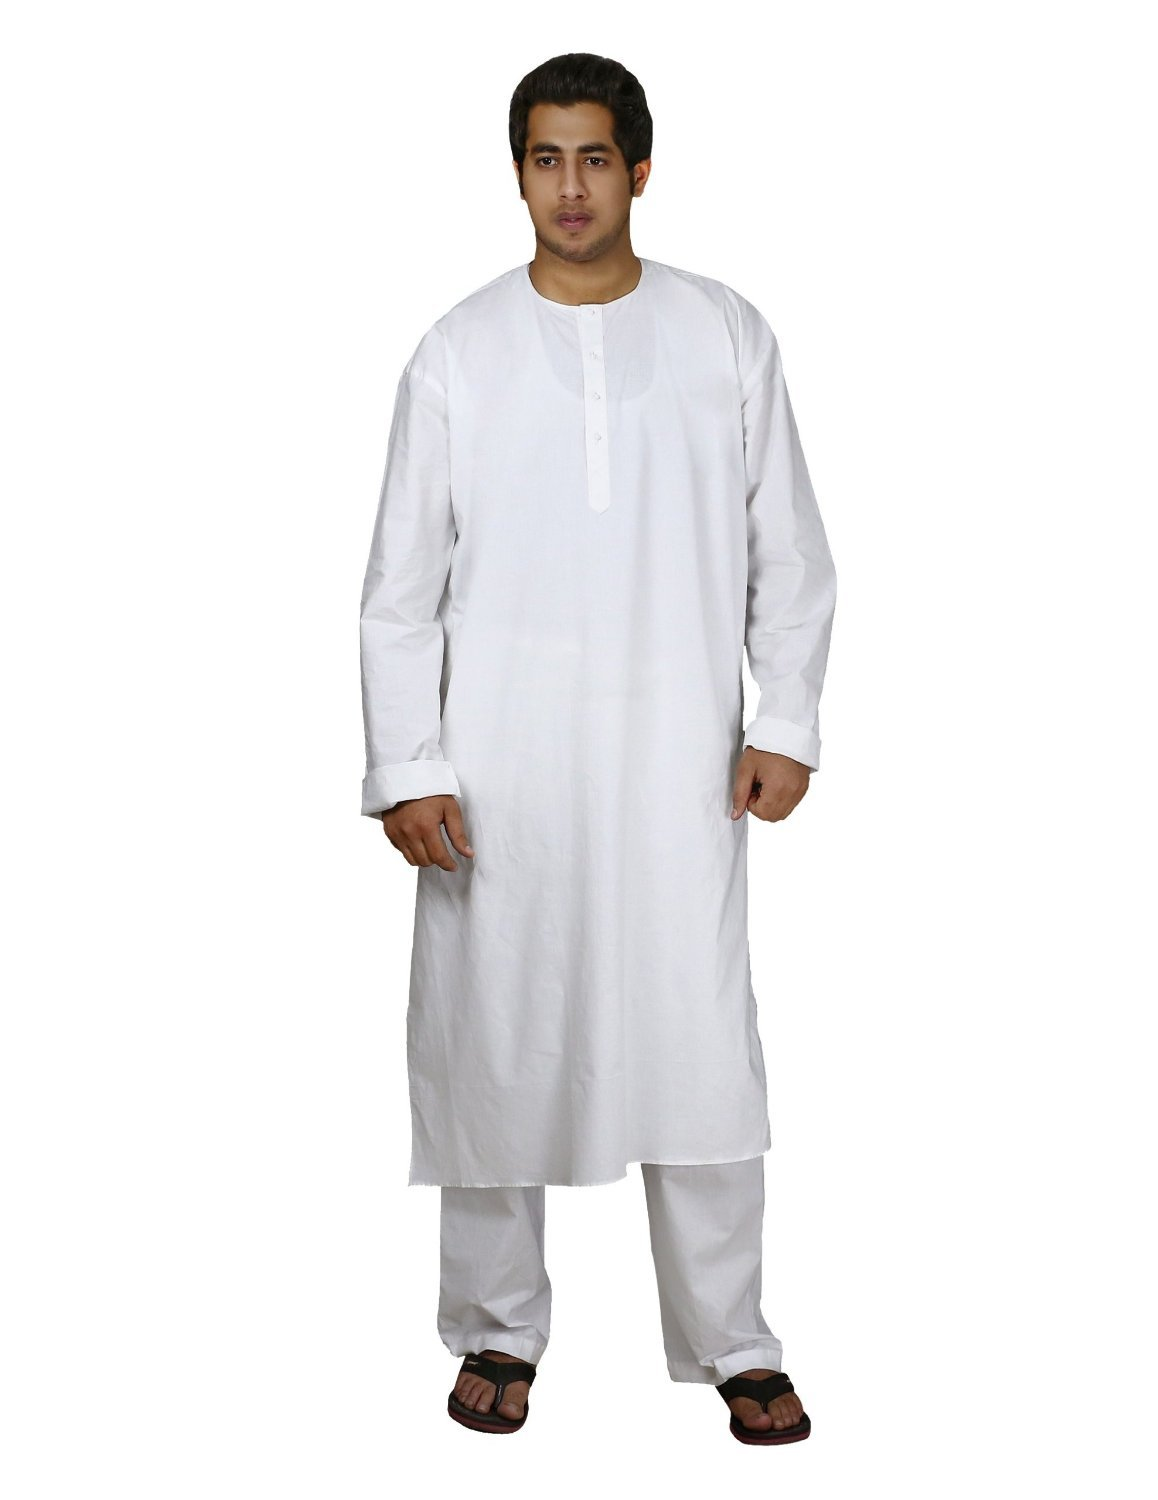 Handmade White Cotton Men's Kurta Pajamas Set - Traditional Indian Costume - Perfect for Casual Summer Dress